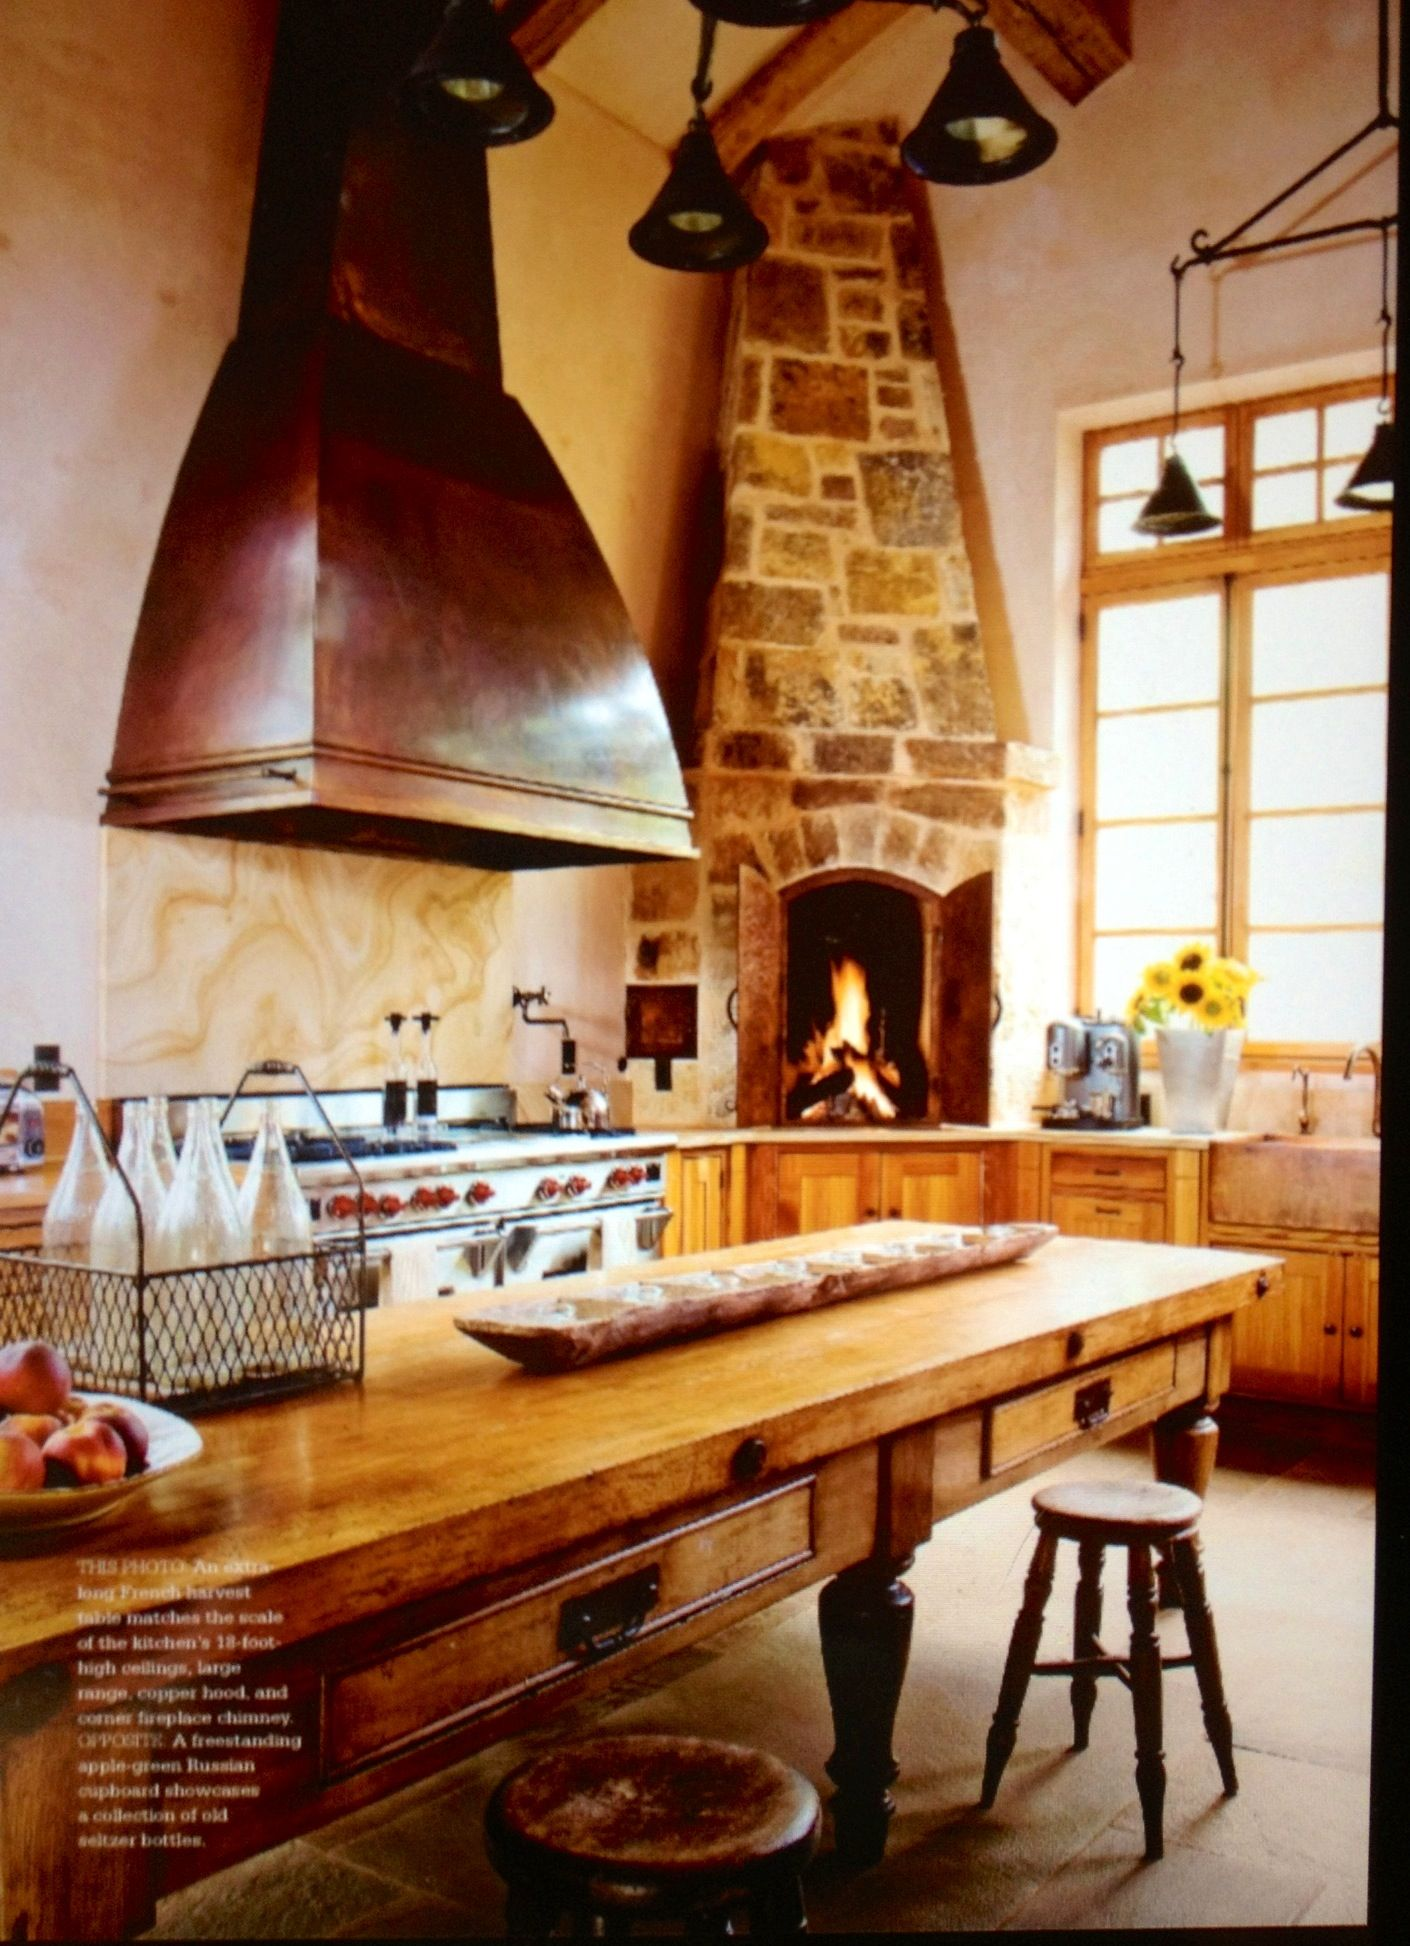 39 Big Kitchen Interior Design Ideas For A Unique Kitchen: Image Source Tuscan Style Magazine